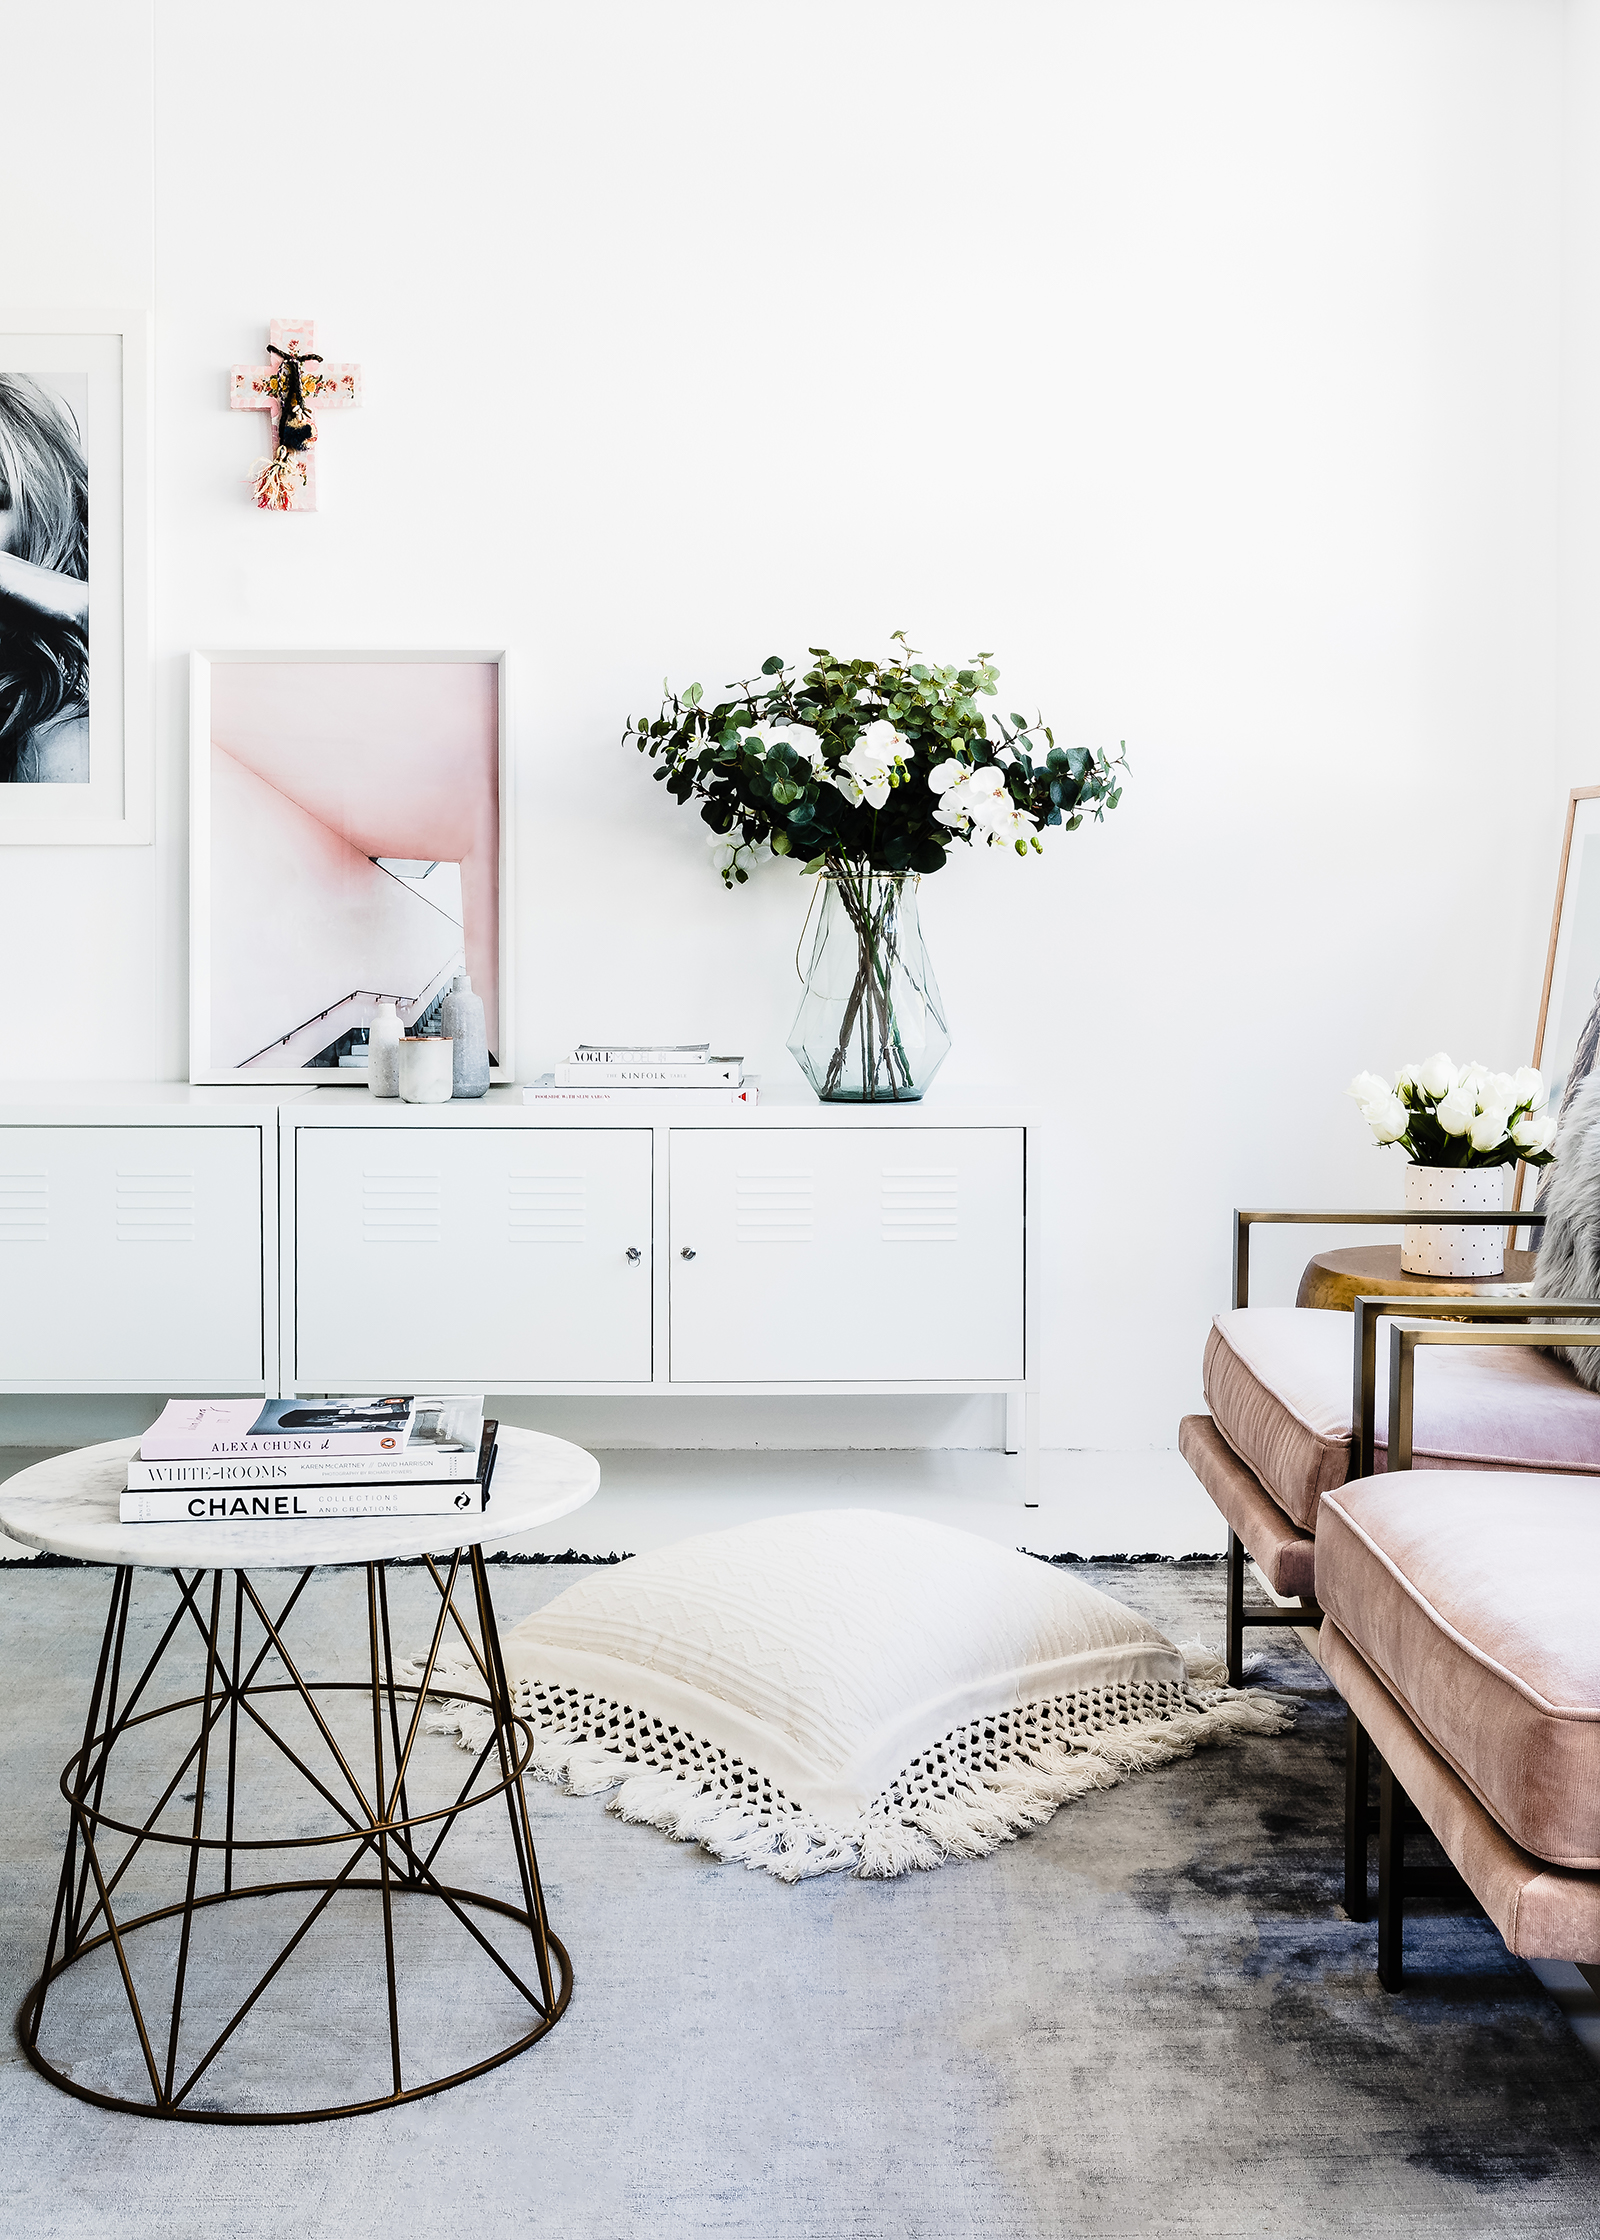 How To Choose The Perfect White Paint For Your Walls We